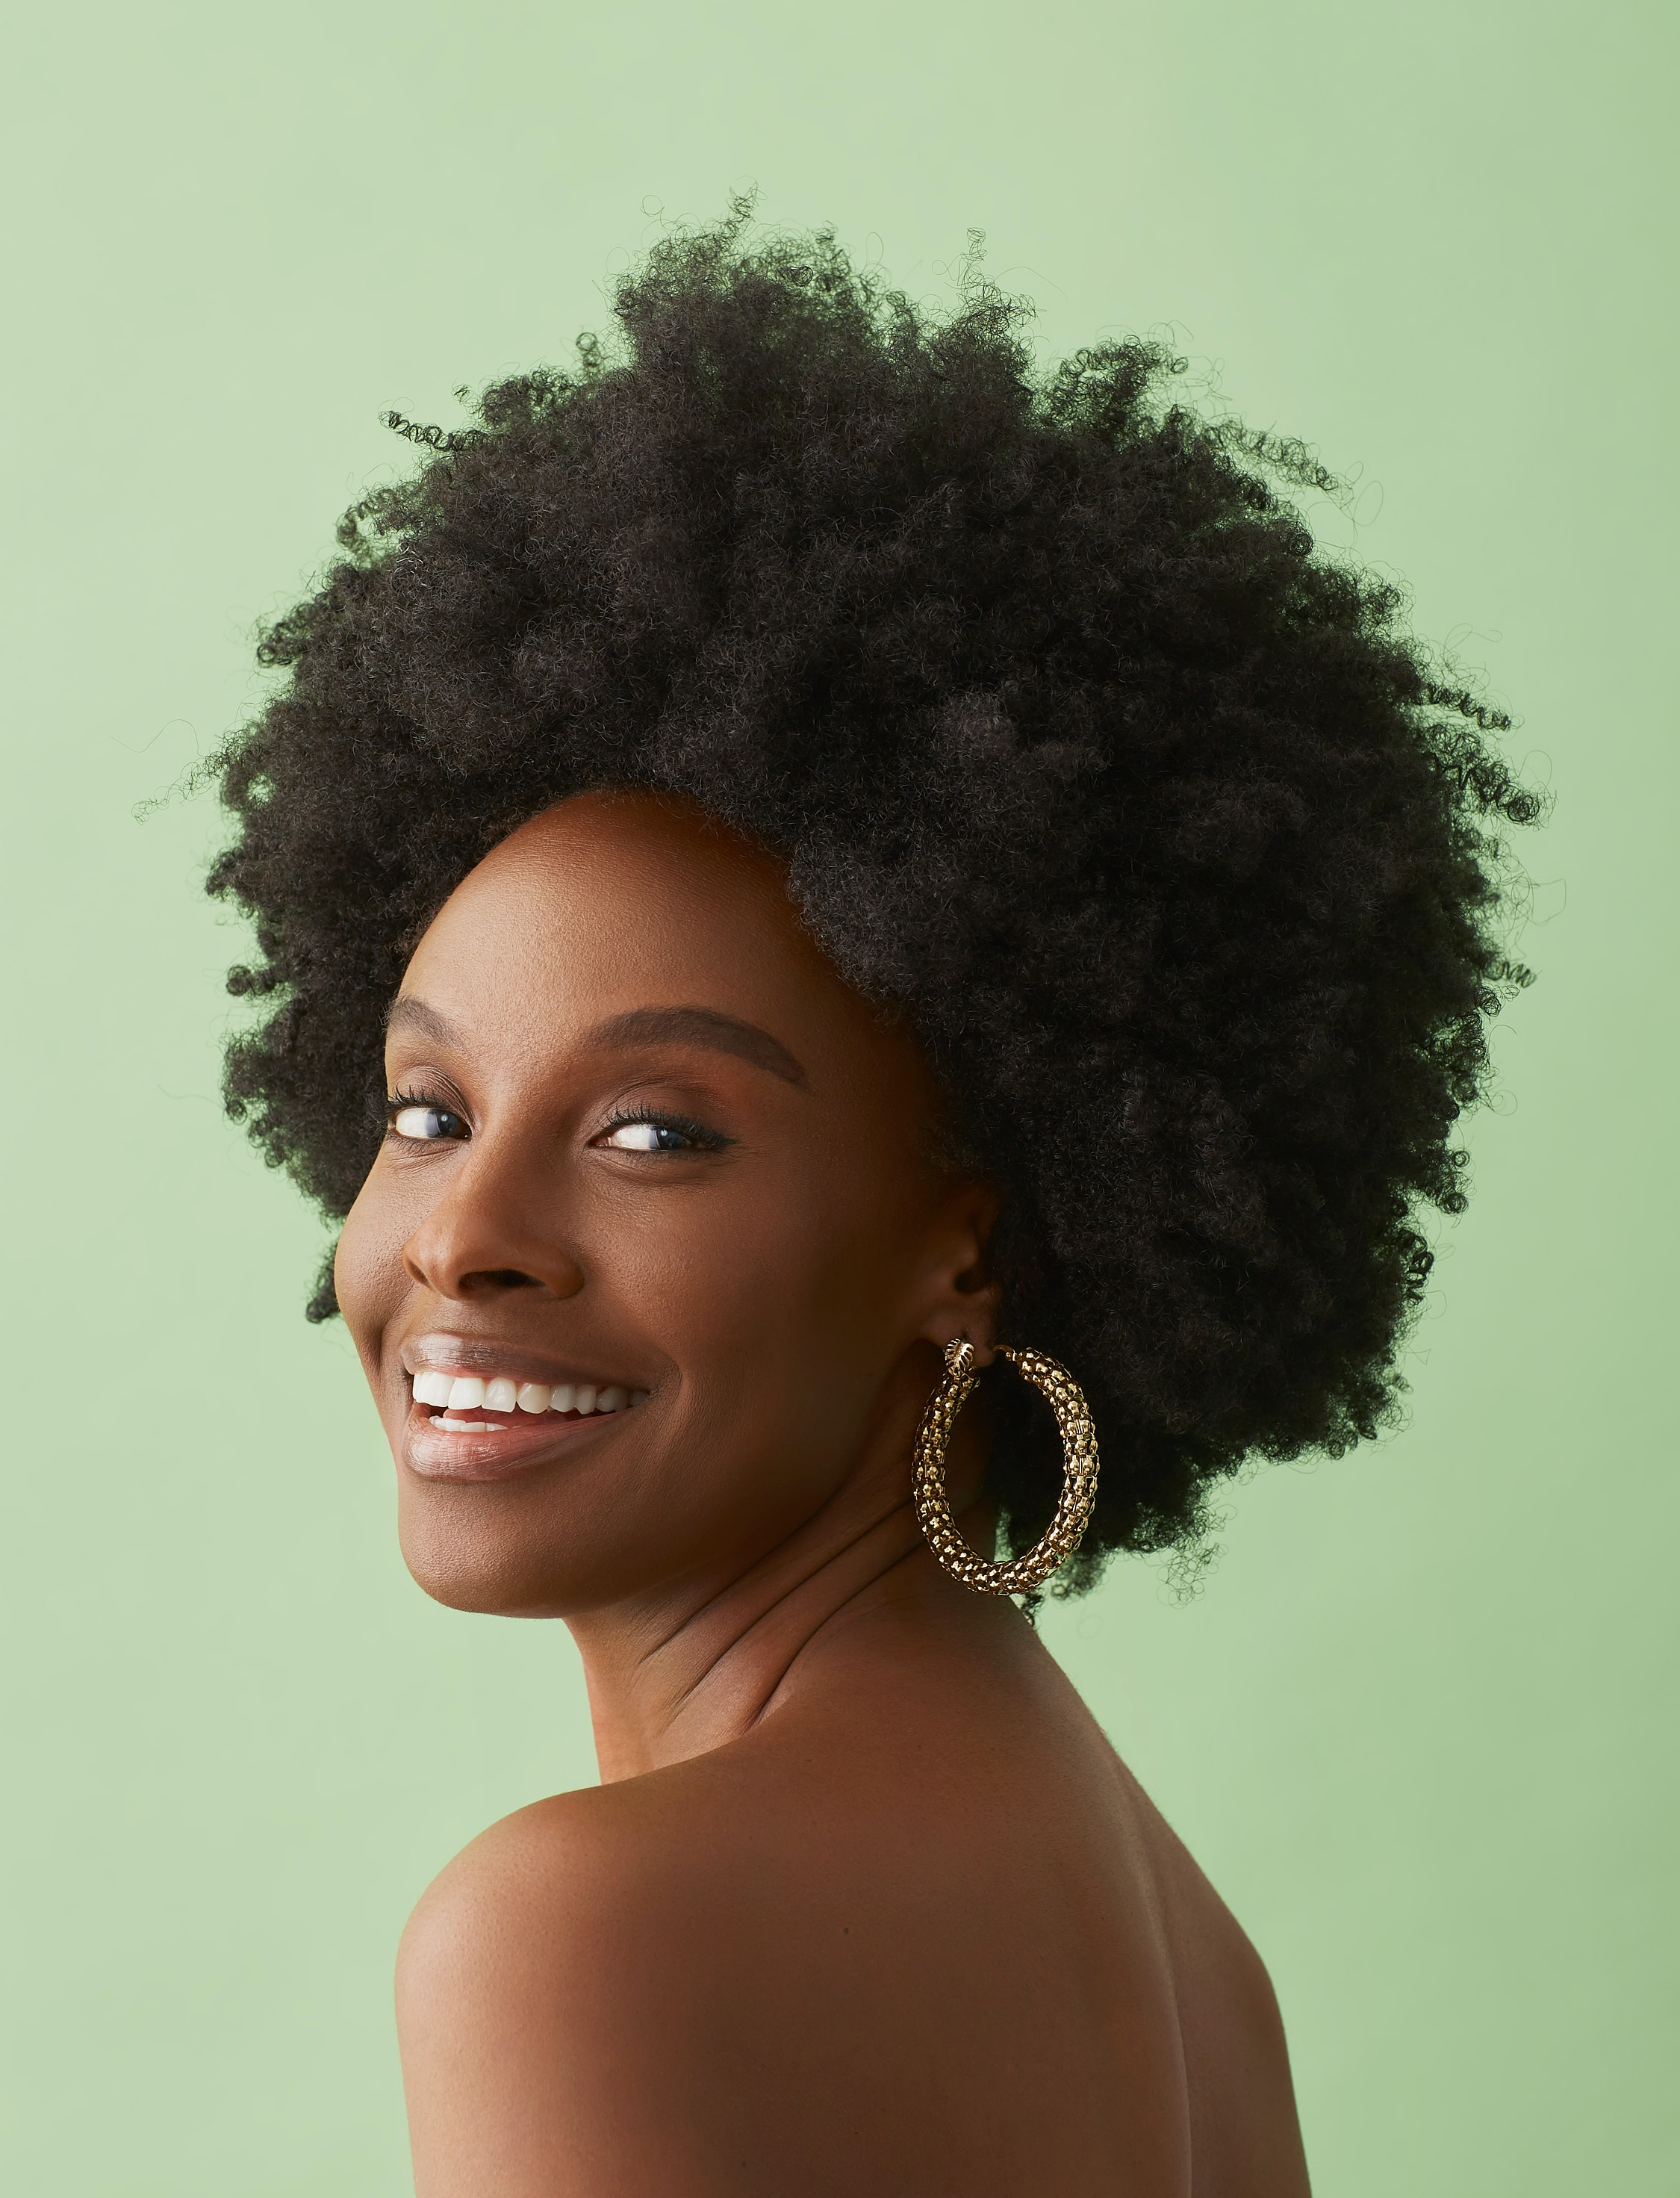 7 Black Women With 4c Hair Reflect On The Journey Joys Of Having A Beautiful Coily Texture